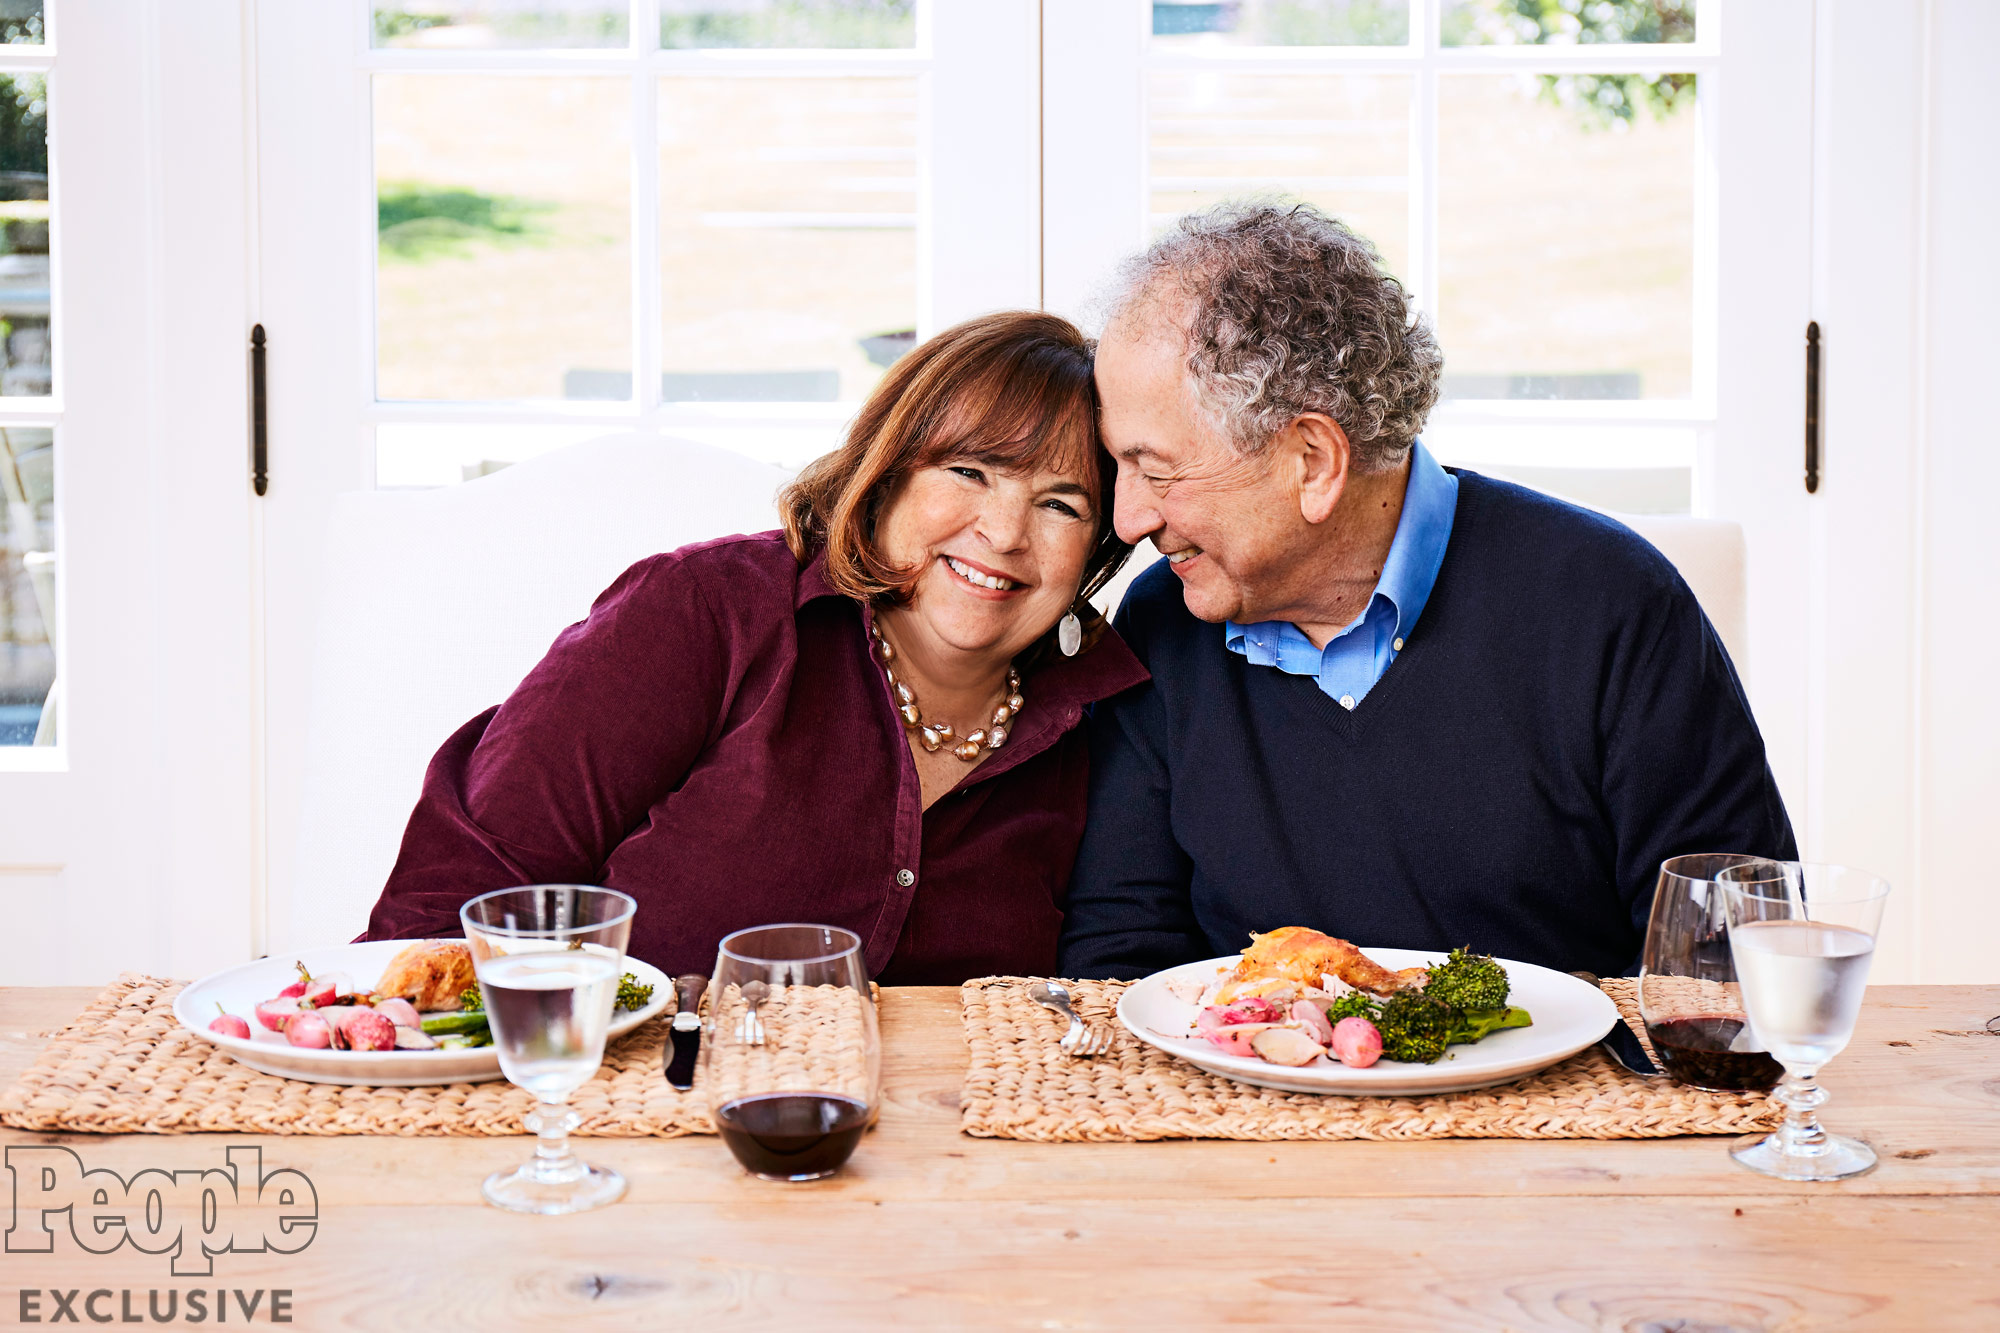 Ina Garten Explains Why She's Never Had Kids with Her Husband Jeffrey: 'It Was a Choice'